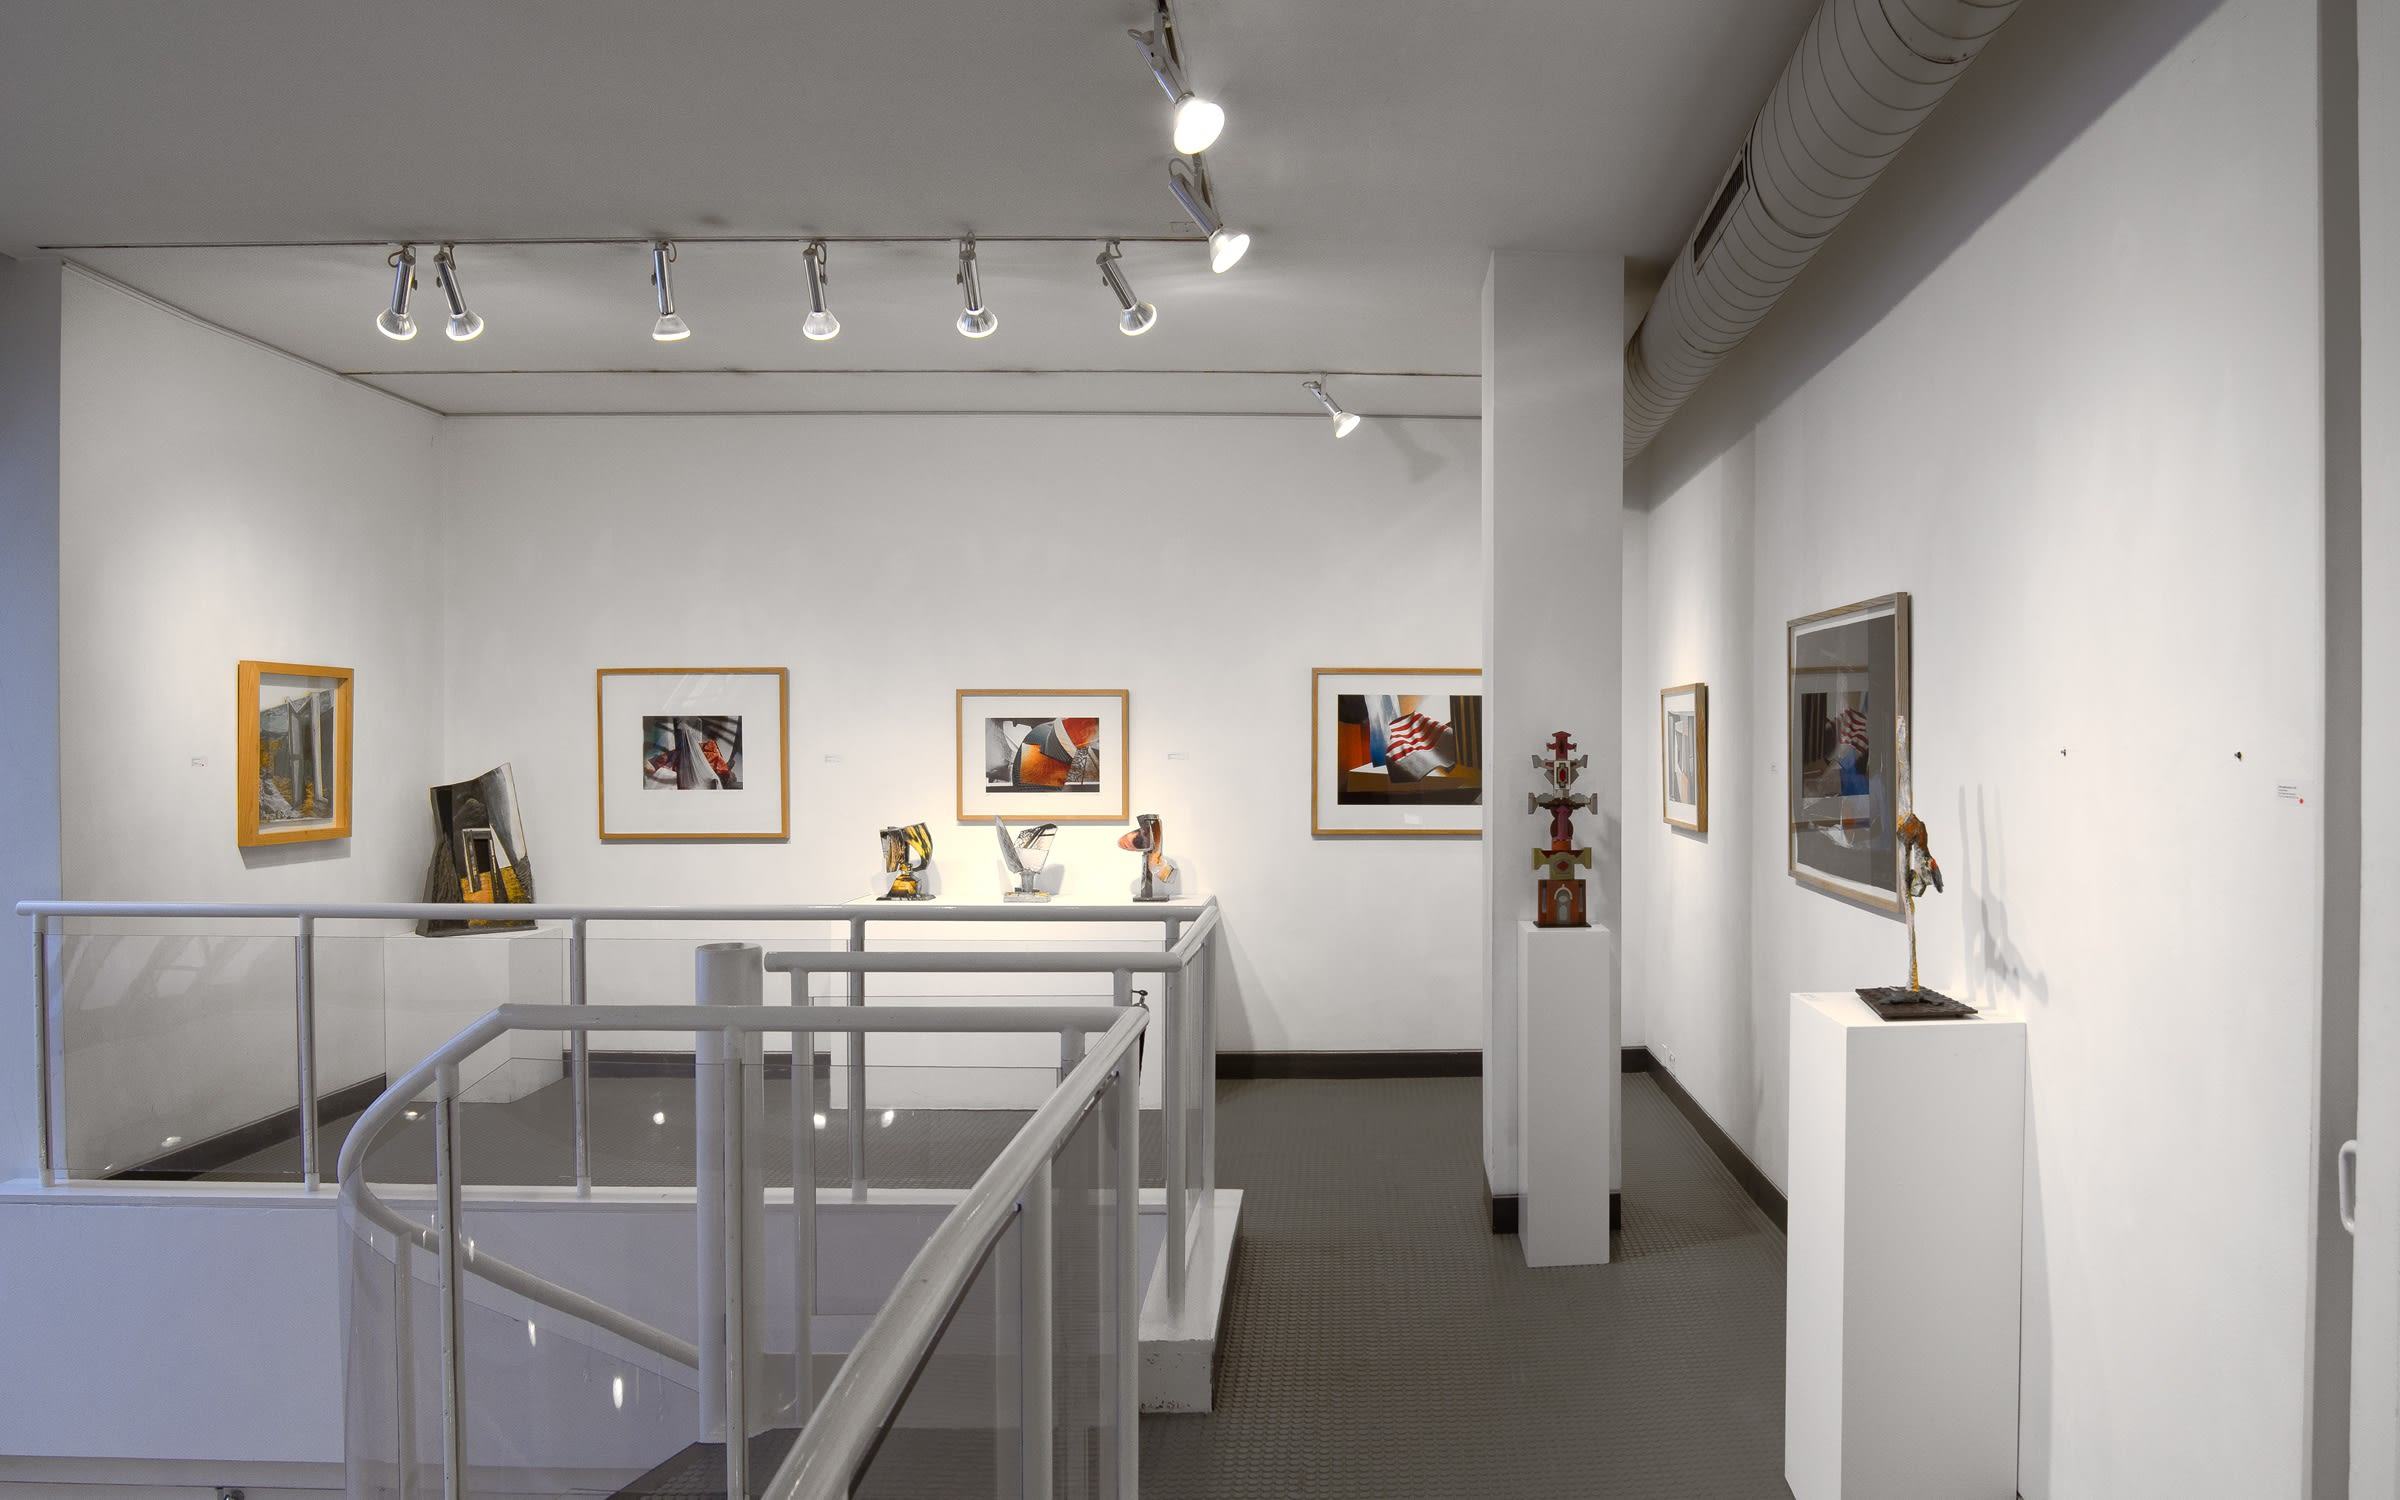 """<span class=""""link fancybox-details-link""""><a href=""""/exhibitions/79/works/image_standalone215/"""">View Detail Page</a></span><p>IVOR ABRAHAMS RA 